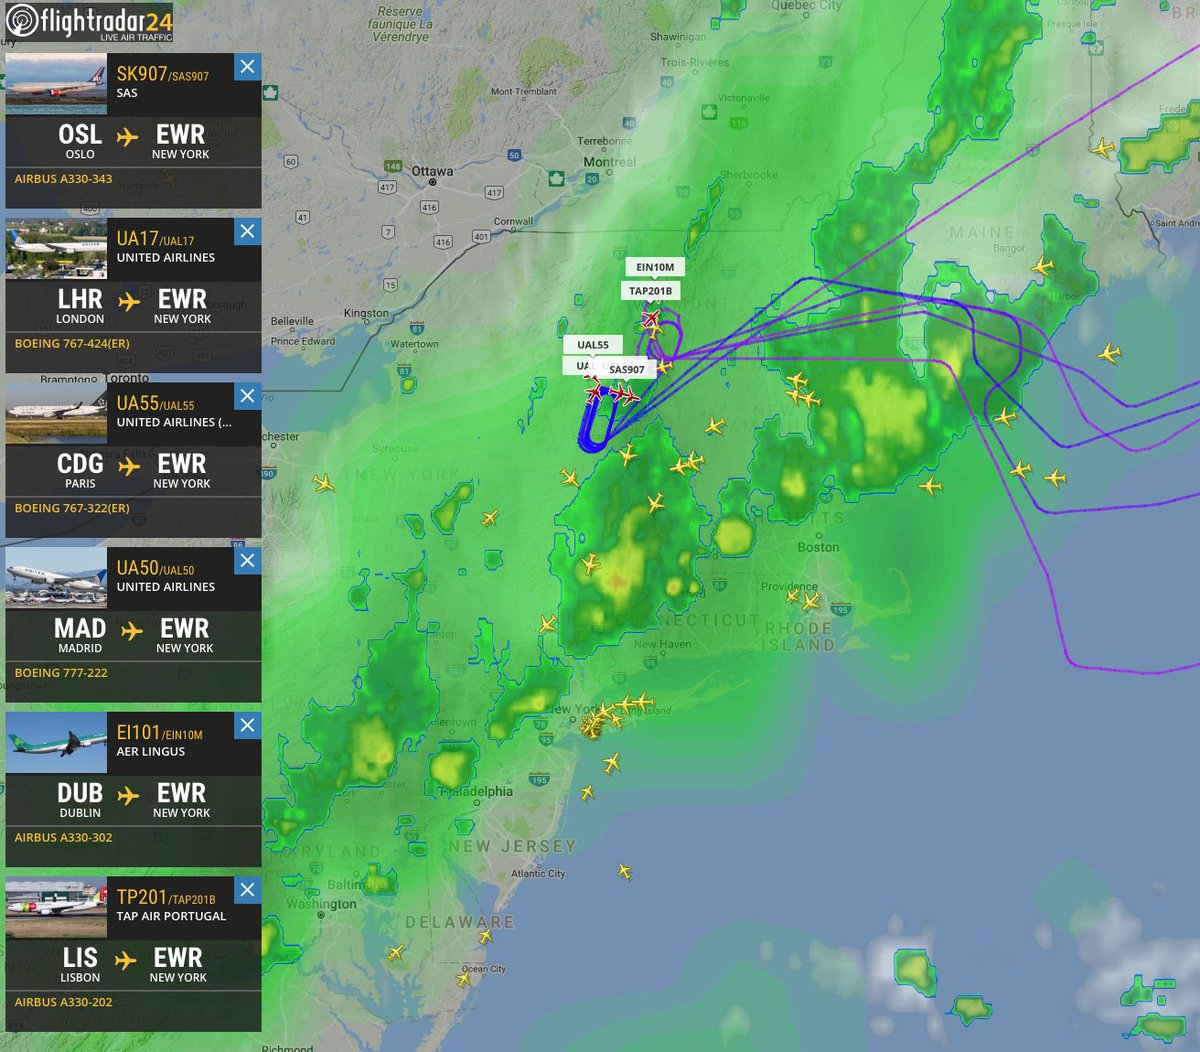 And intercontinental flights enjoying scenic update New York and Vermont, waiting for storms to pass at Newarkhttps://t.co/XlooazF4v8.